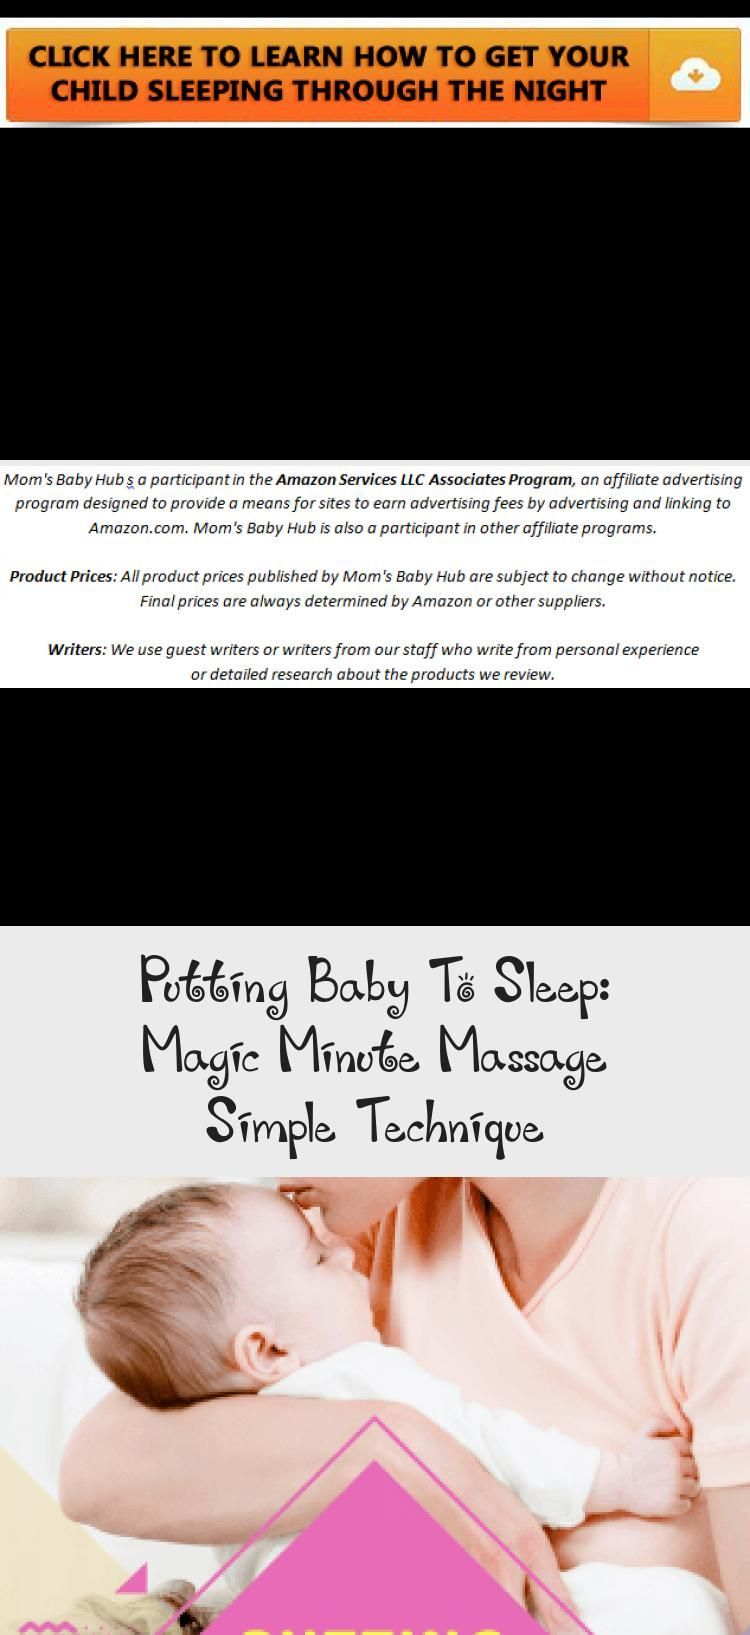 Putting Baby To Sleep: Magic Minute Massage Simple Technique - health and diet f...